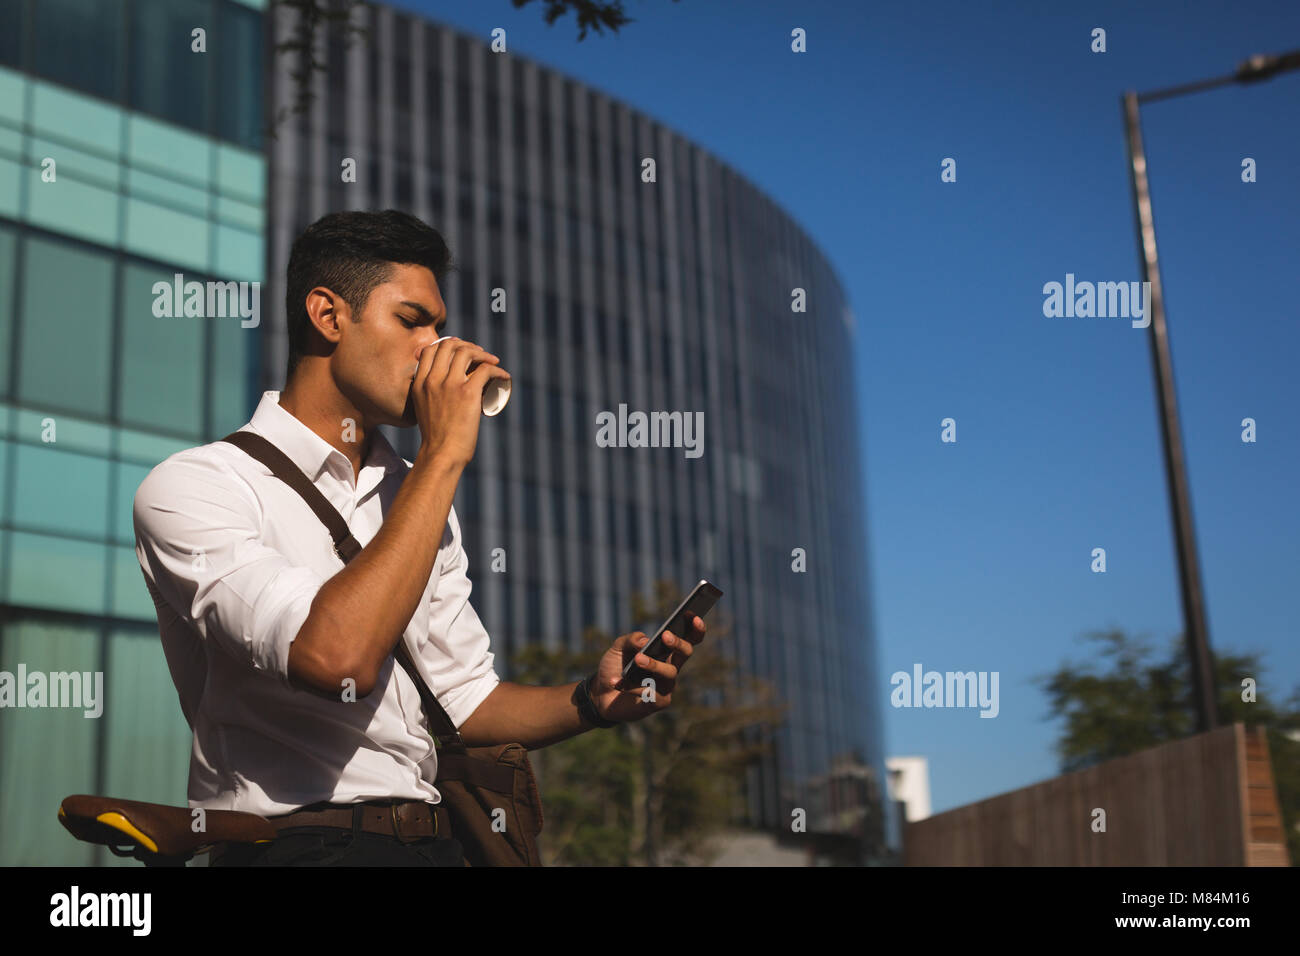 Businessman using mobile phone at office premises - Stock Image